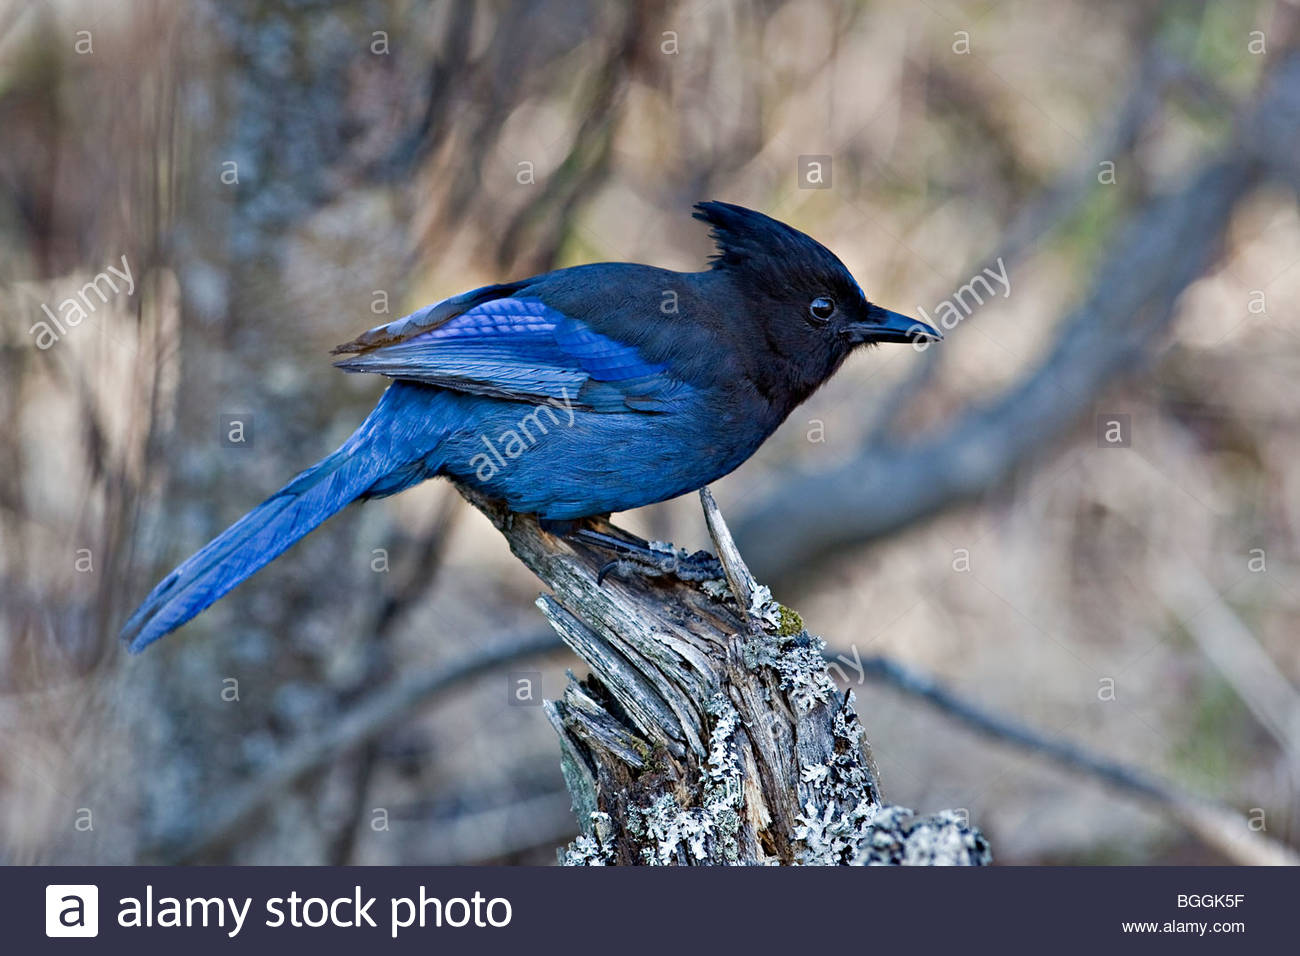 Single adult Steller's jay (Cyanocitta stelleri) in common habitat of alder and birch woodland. - Stock Image